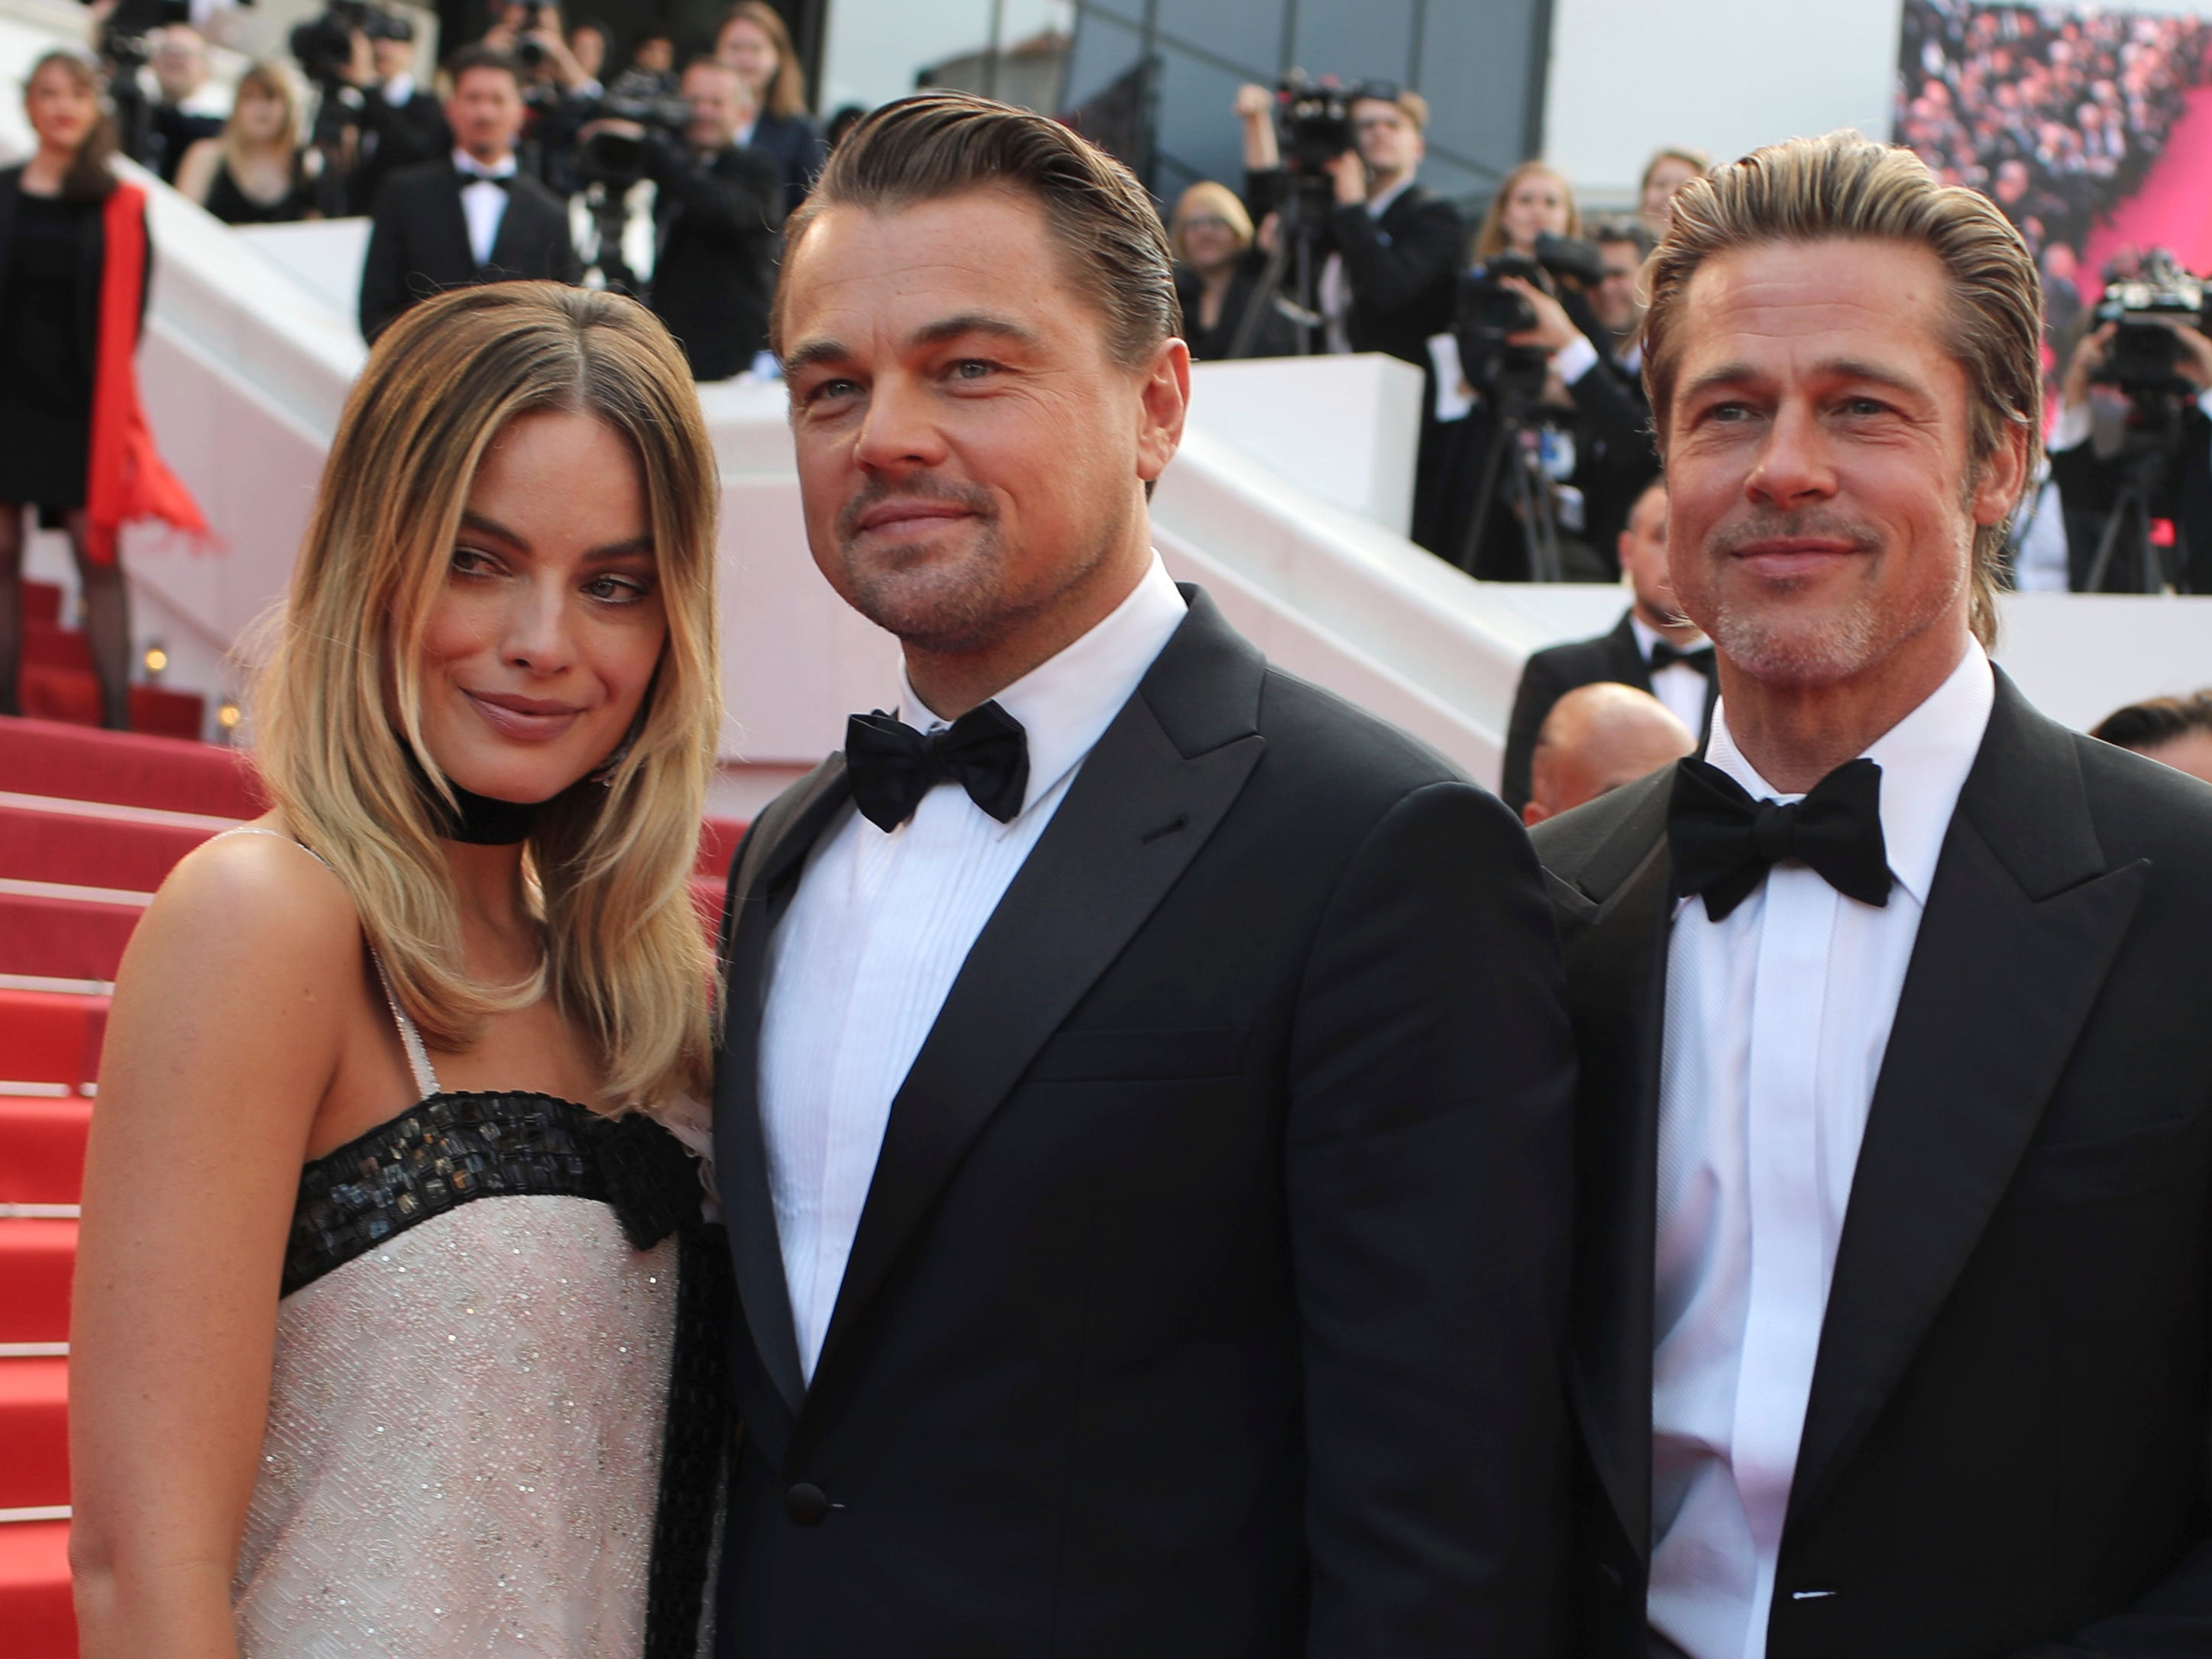 (L-R): Actors Margot Robbie, Leonardo DiCaprio and Brad Pitt poses for photographers upon arrival at the premiere of the film 'Once Upon a Time in Hollywood' at the 72nd international film festival, Cannes, southern France, Tuesday, May 21, 2019.